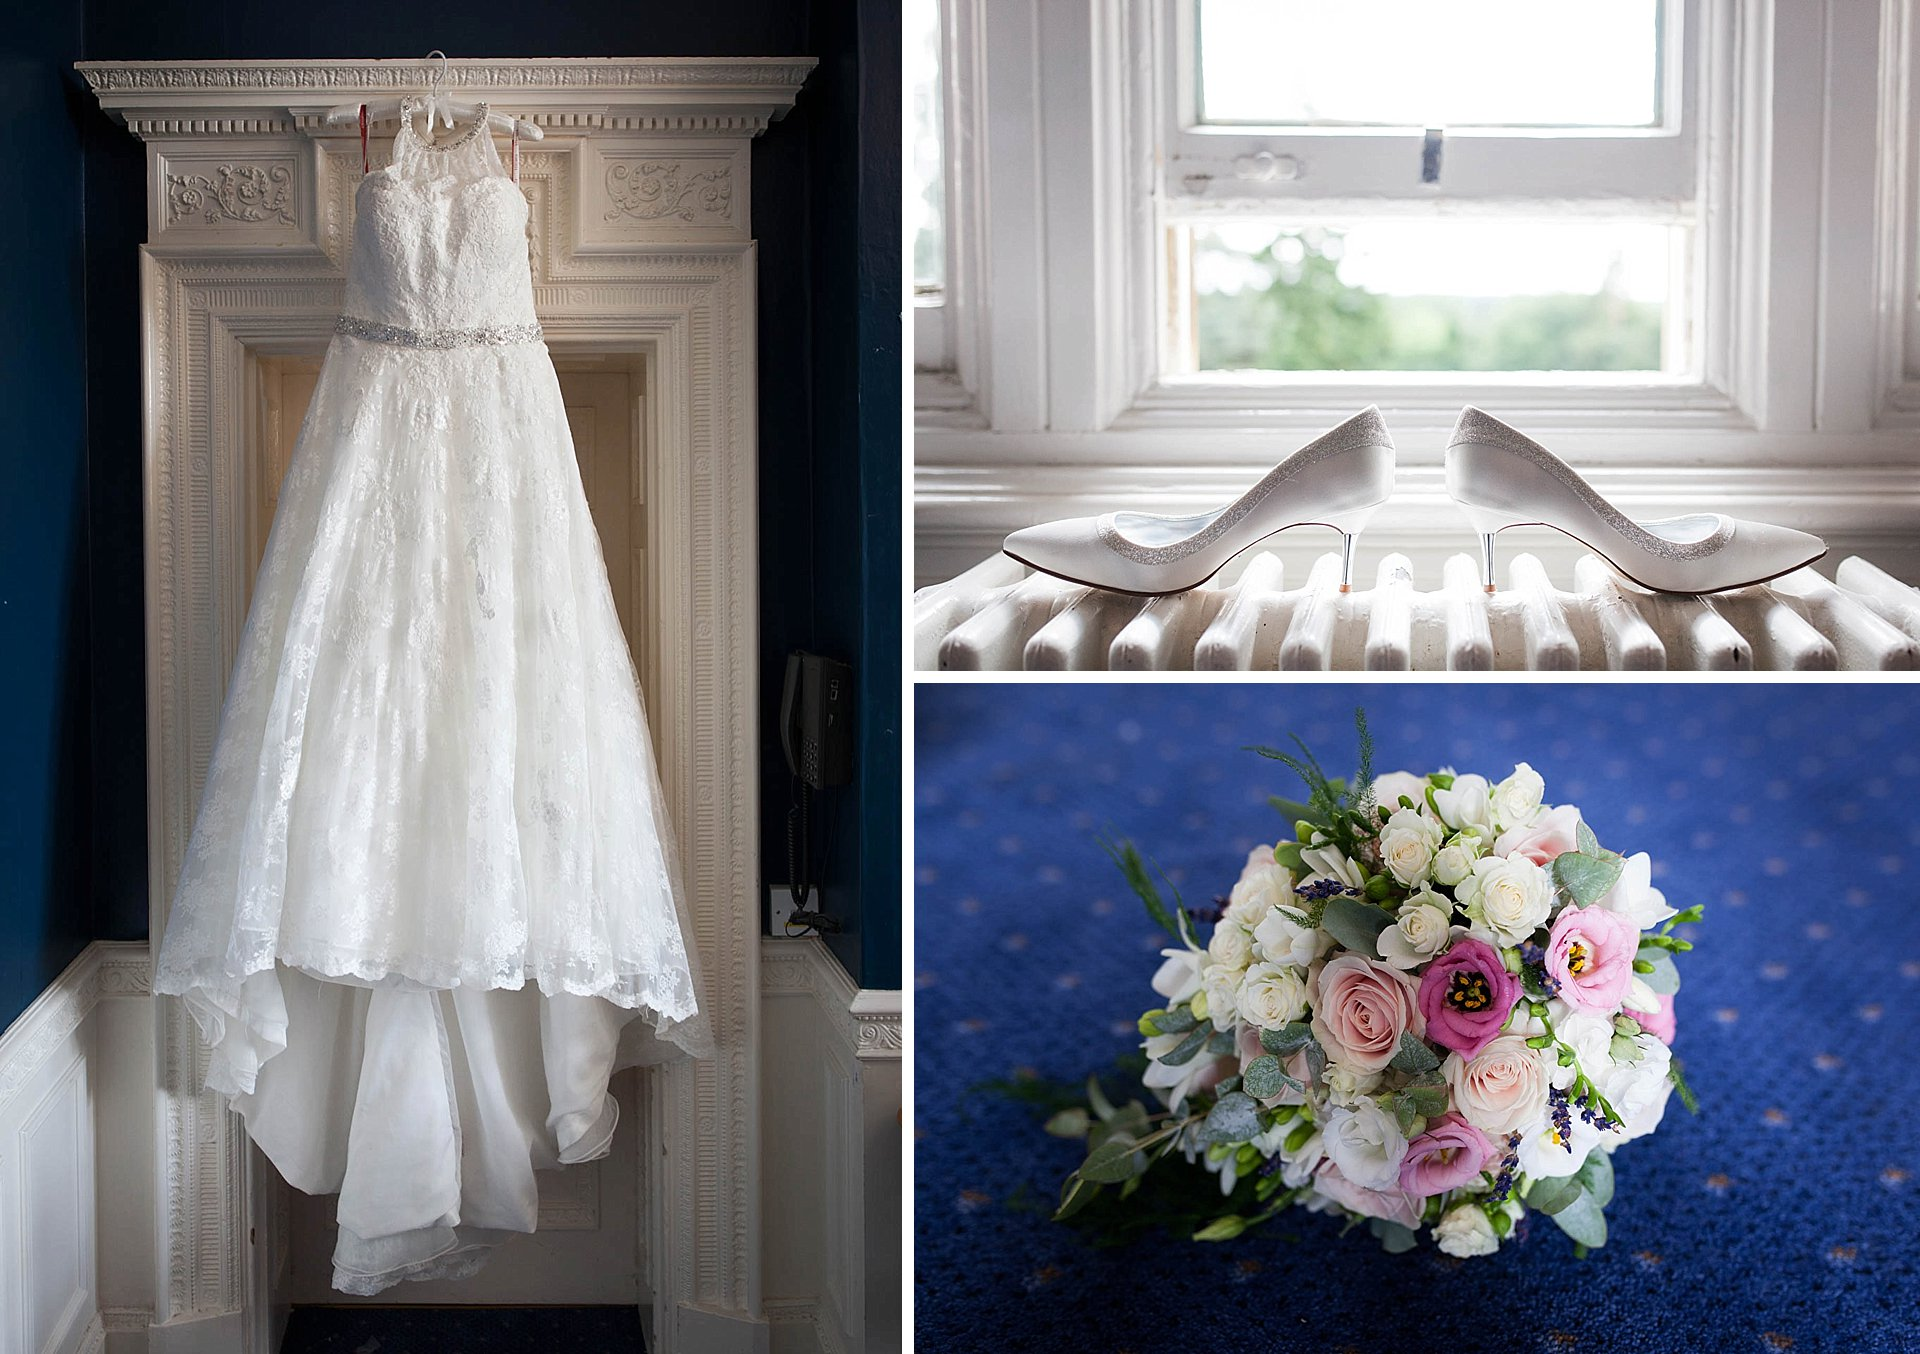 Easthampstead Park bridal details